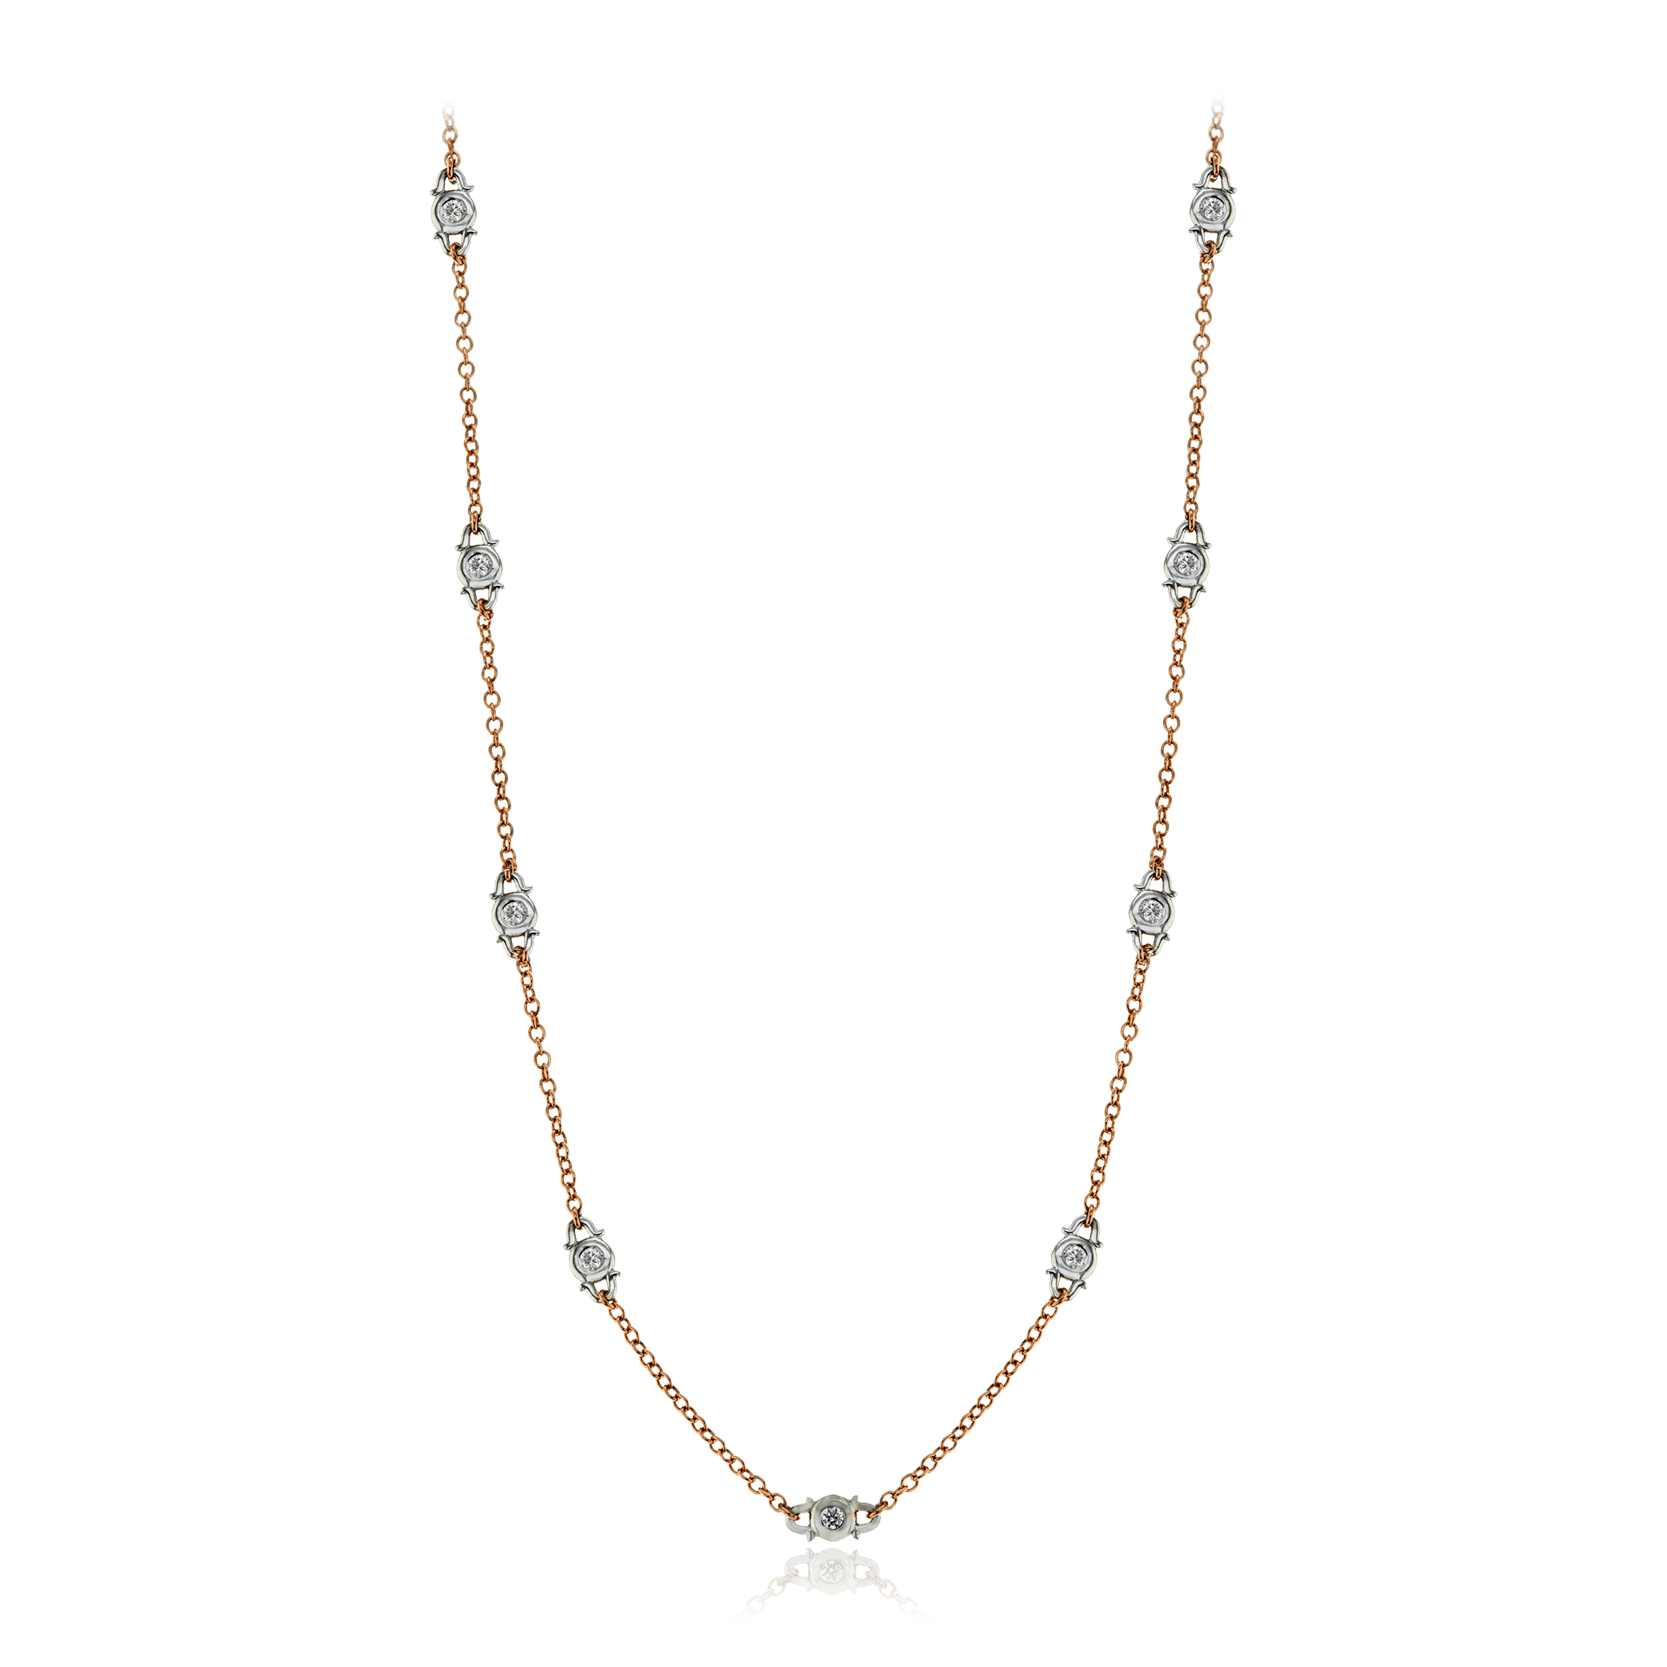 https://simongjewelry.s3.us-west-1.amazonaws.com/products/CH113/CH113_WHITE_18K_X.png